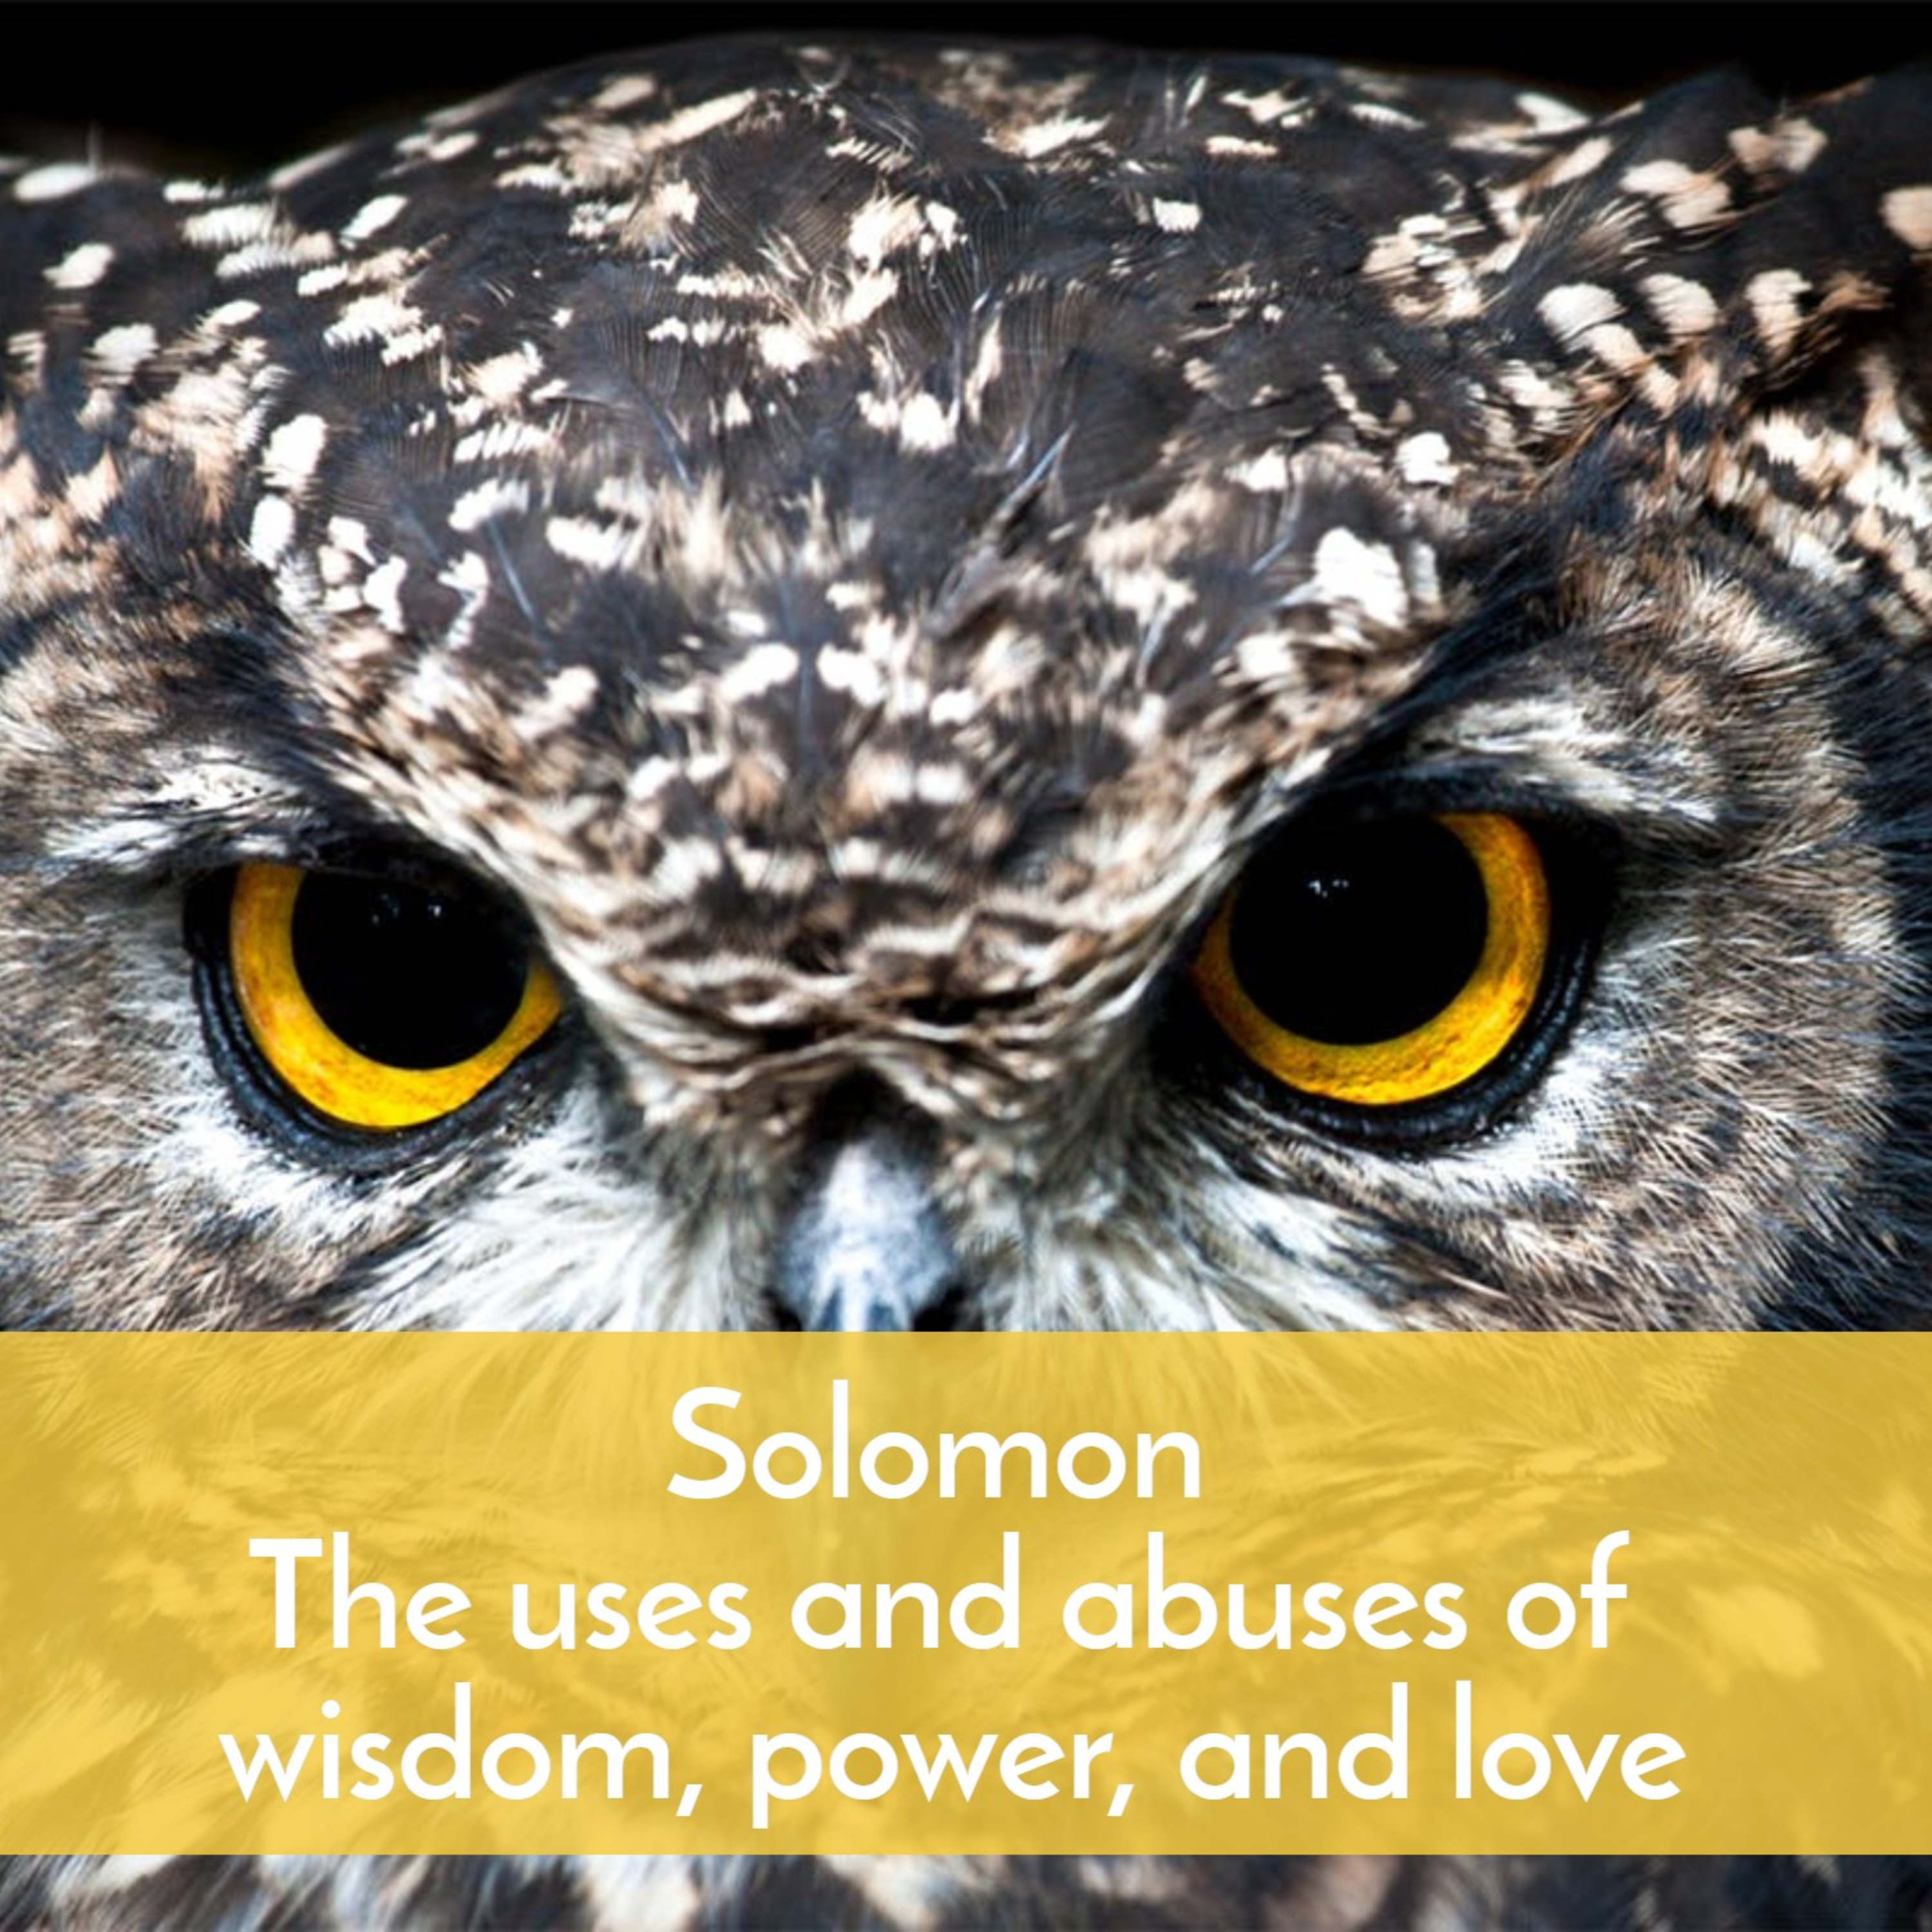 #34 Solomon—the uses and abuses of wisdom, power, and love